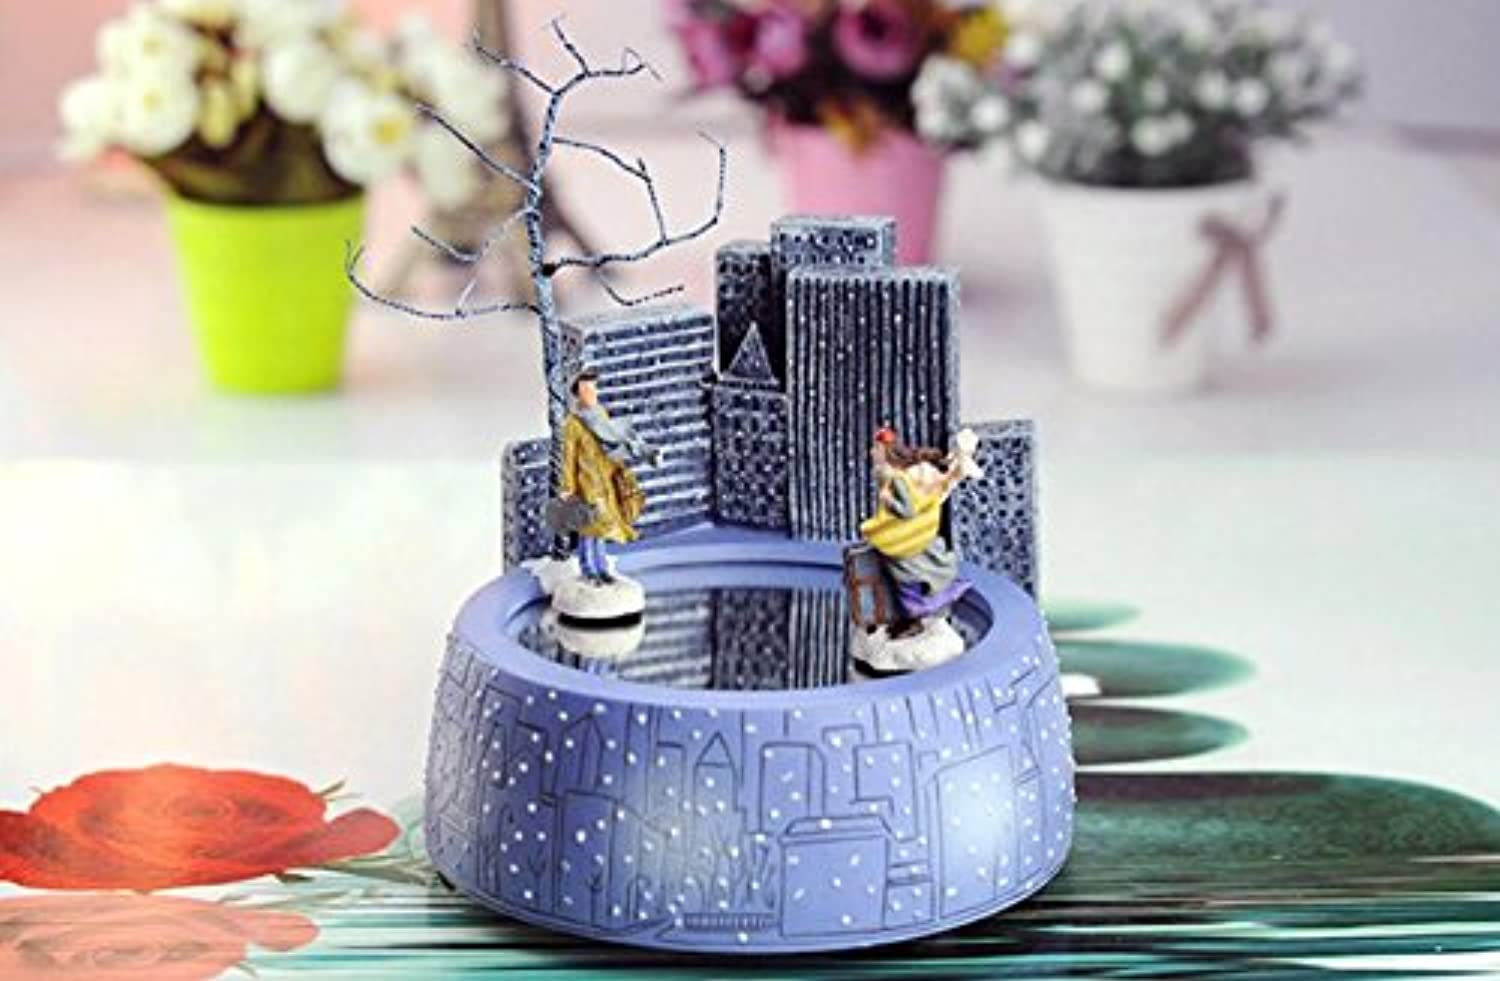 Box Music Creative Resin Music Box Boy Boy Boy and Girl Meet by The Magnet for Christmas GiftsMeet 9ee0ea